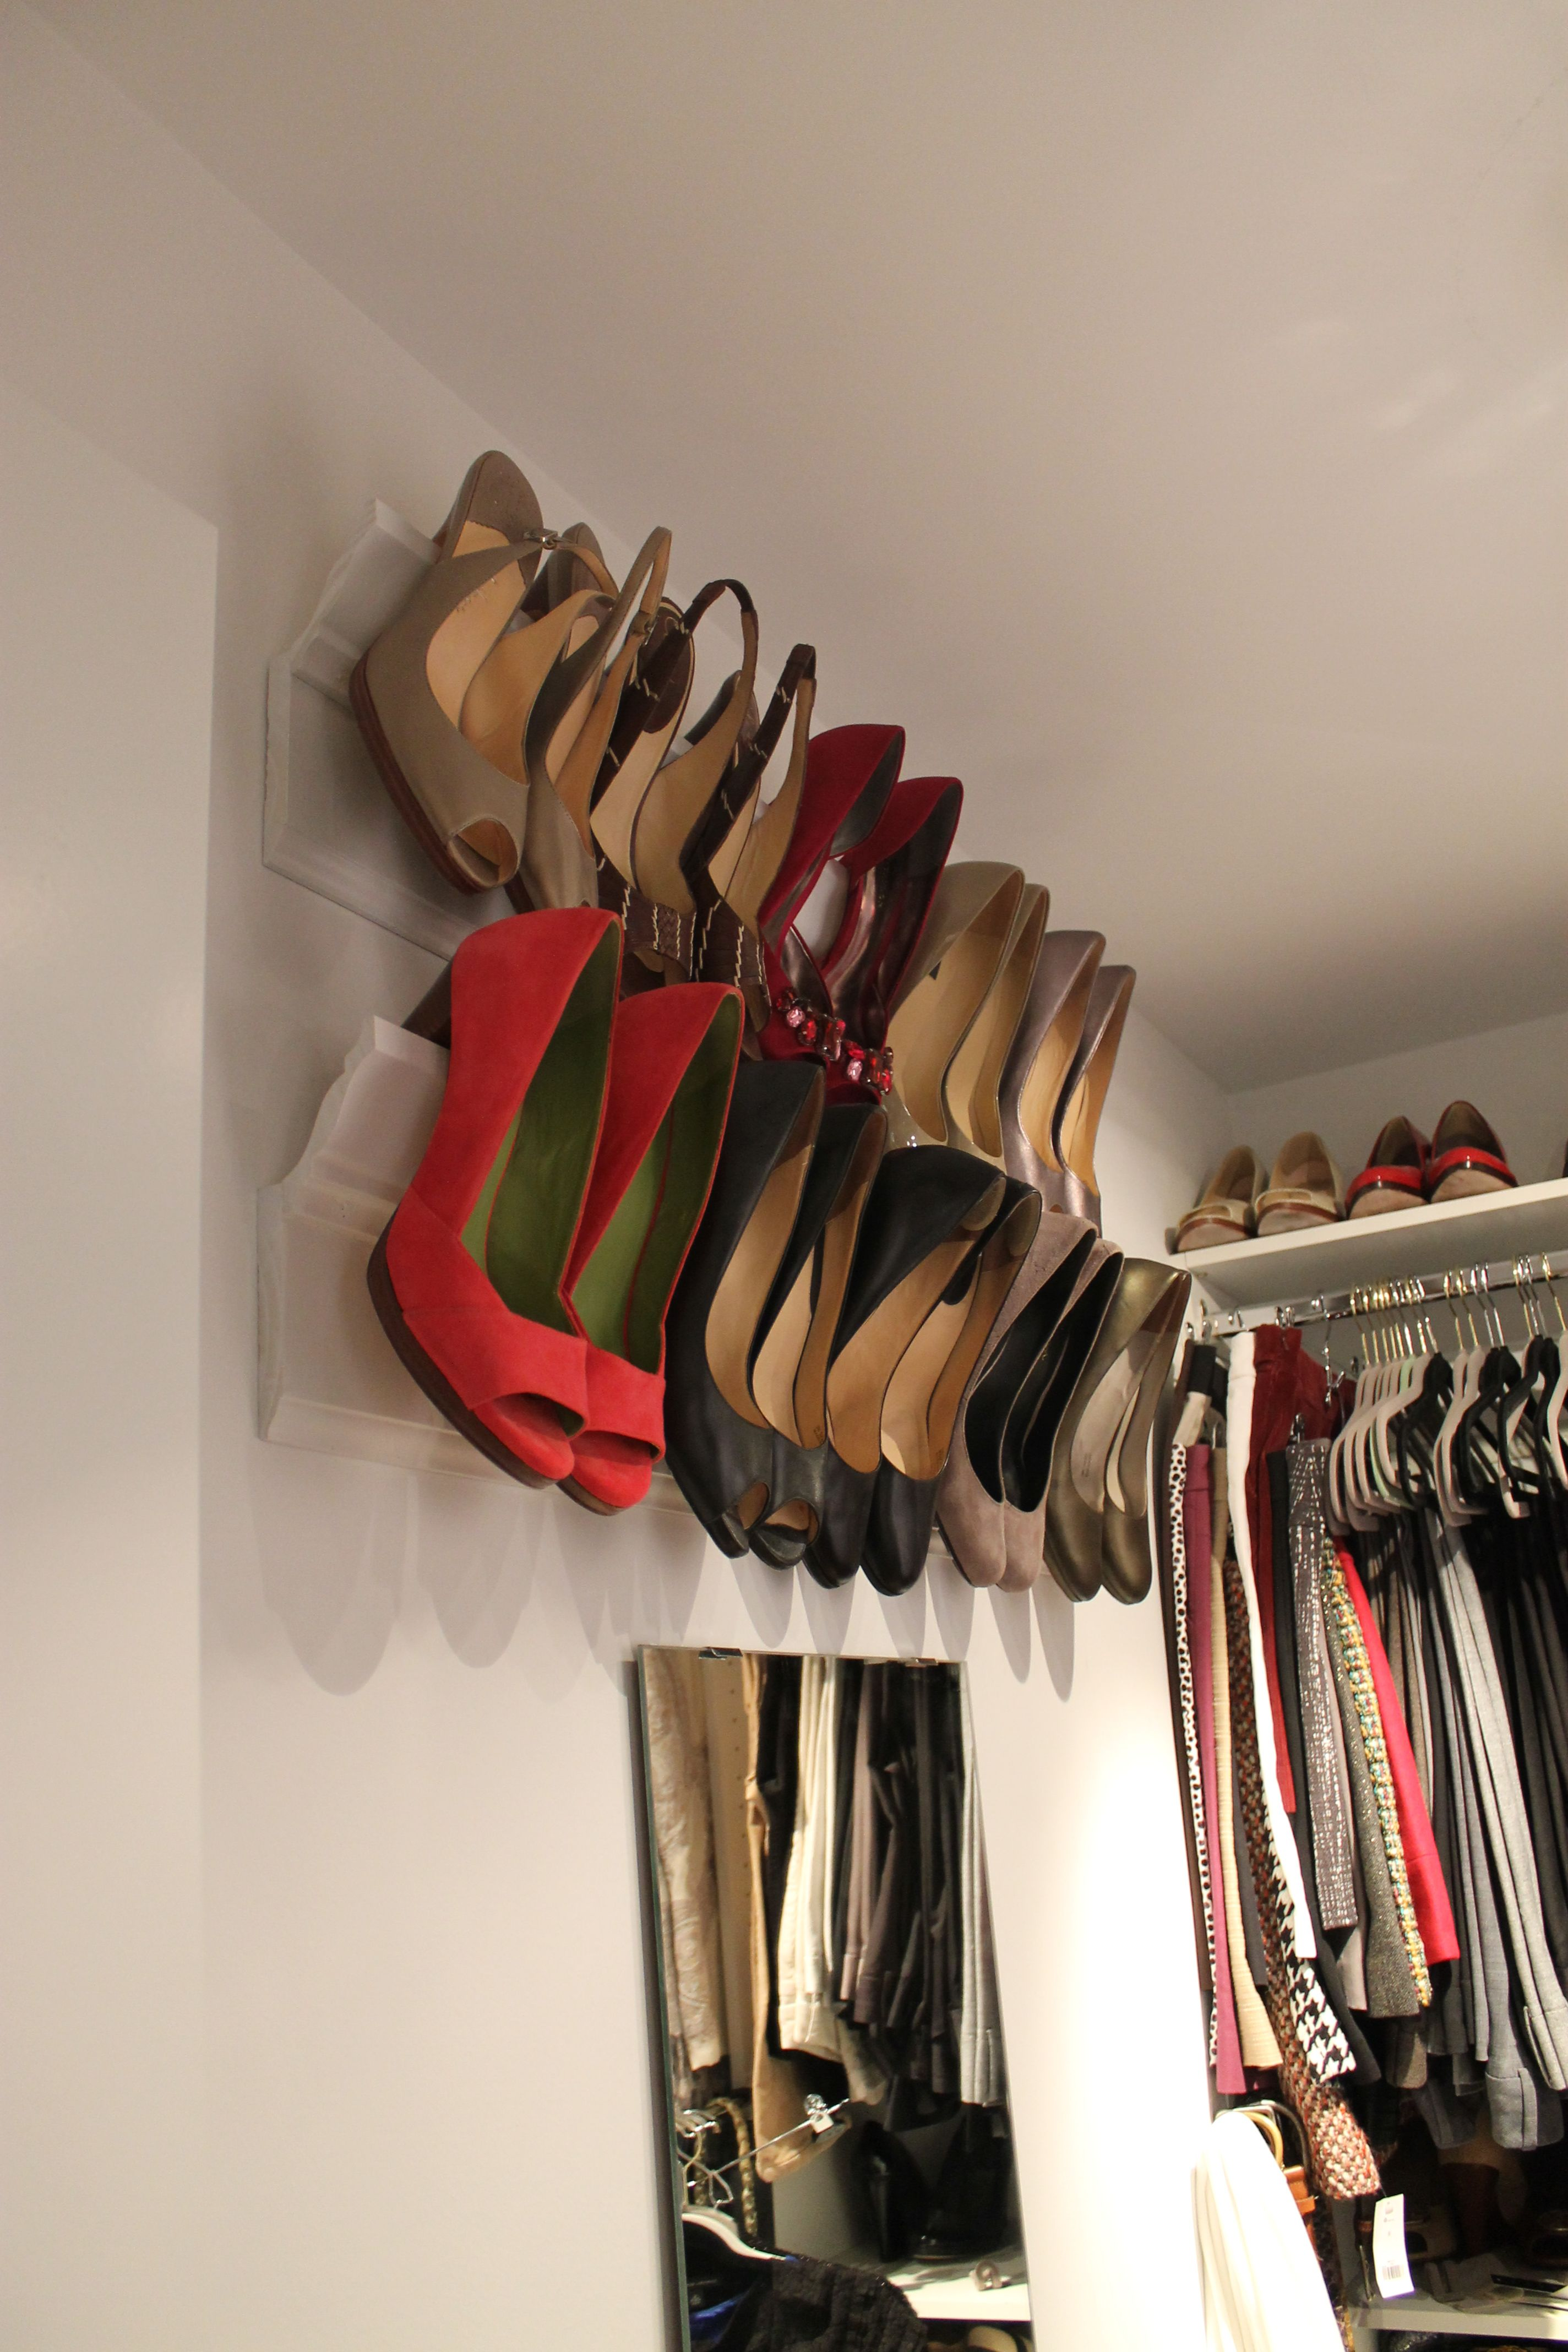 Crown Molding Shoe Shelves  Perfect Space Saver Storage. Total Cost $20